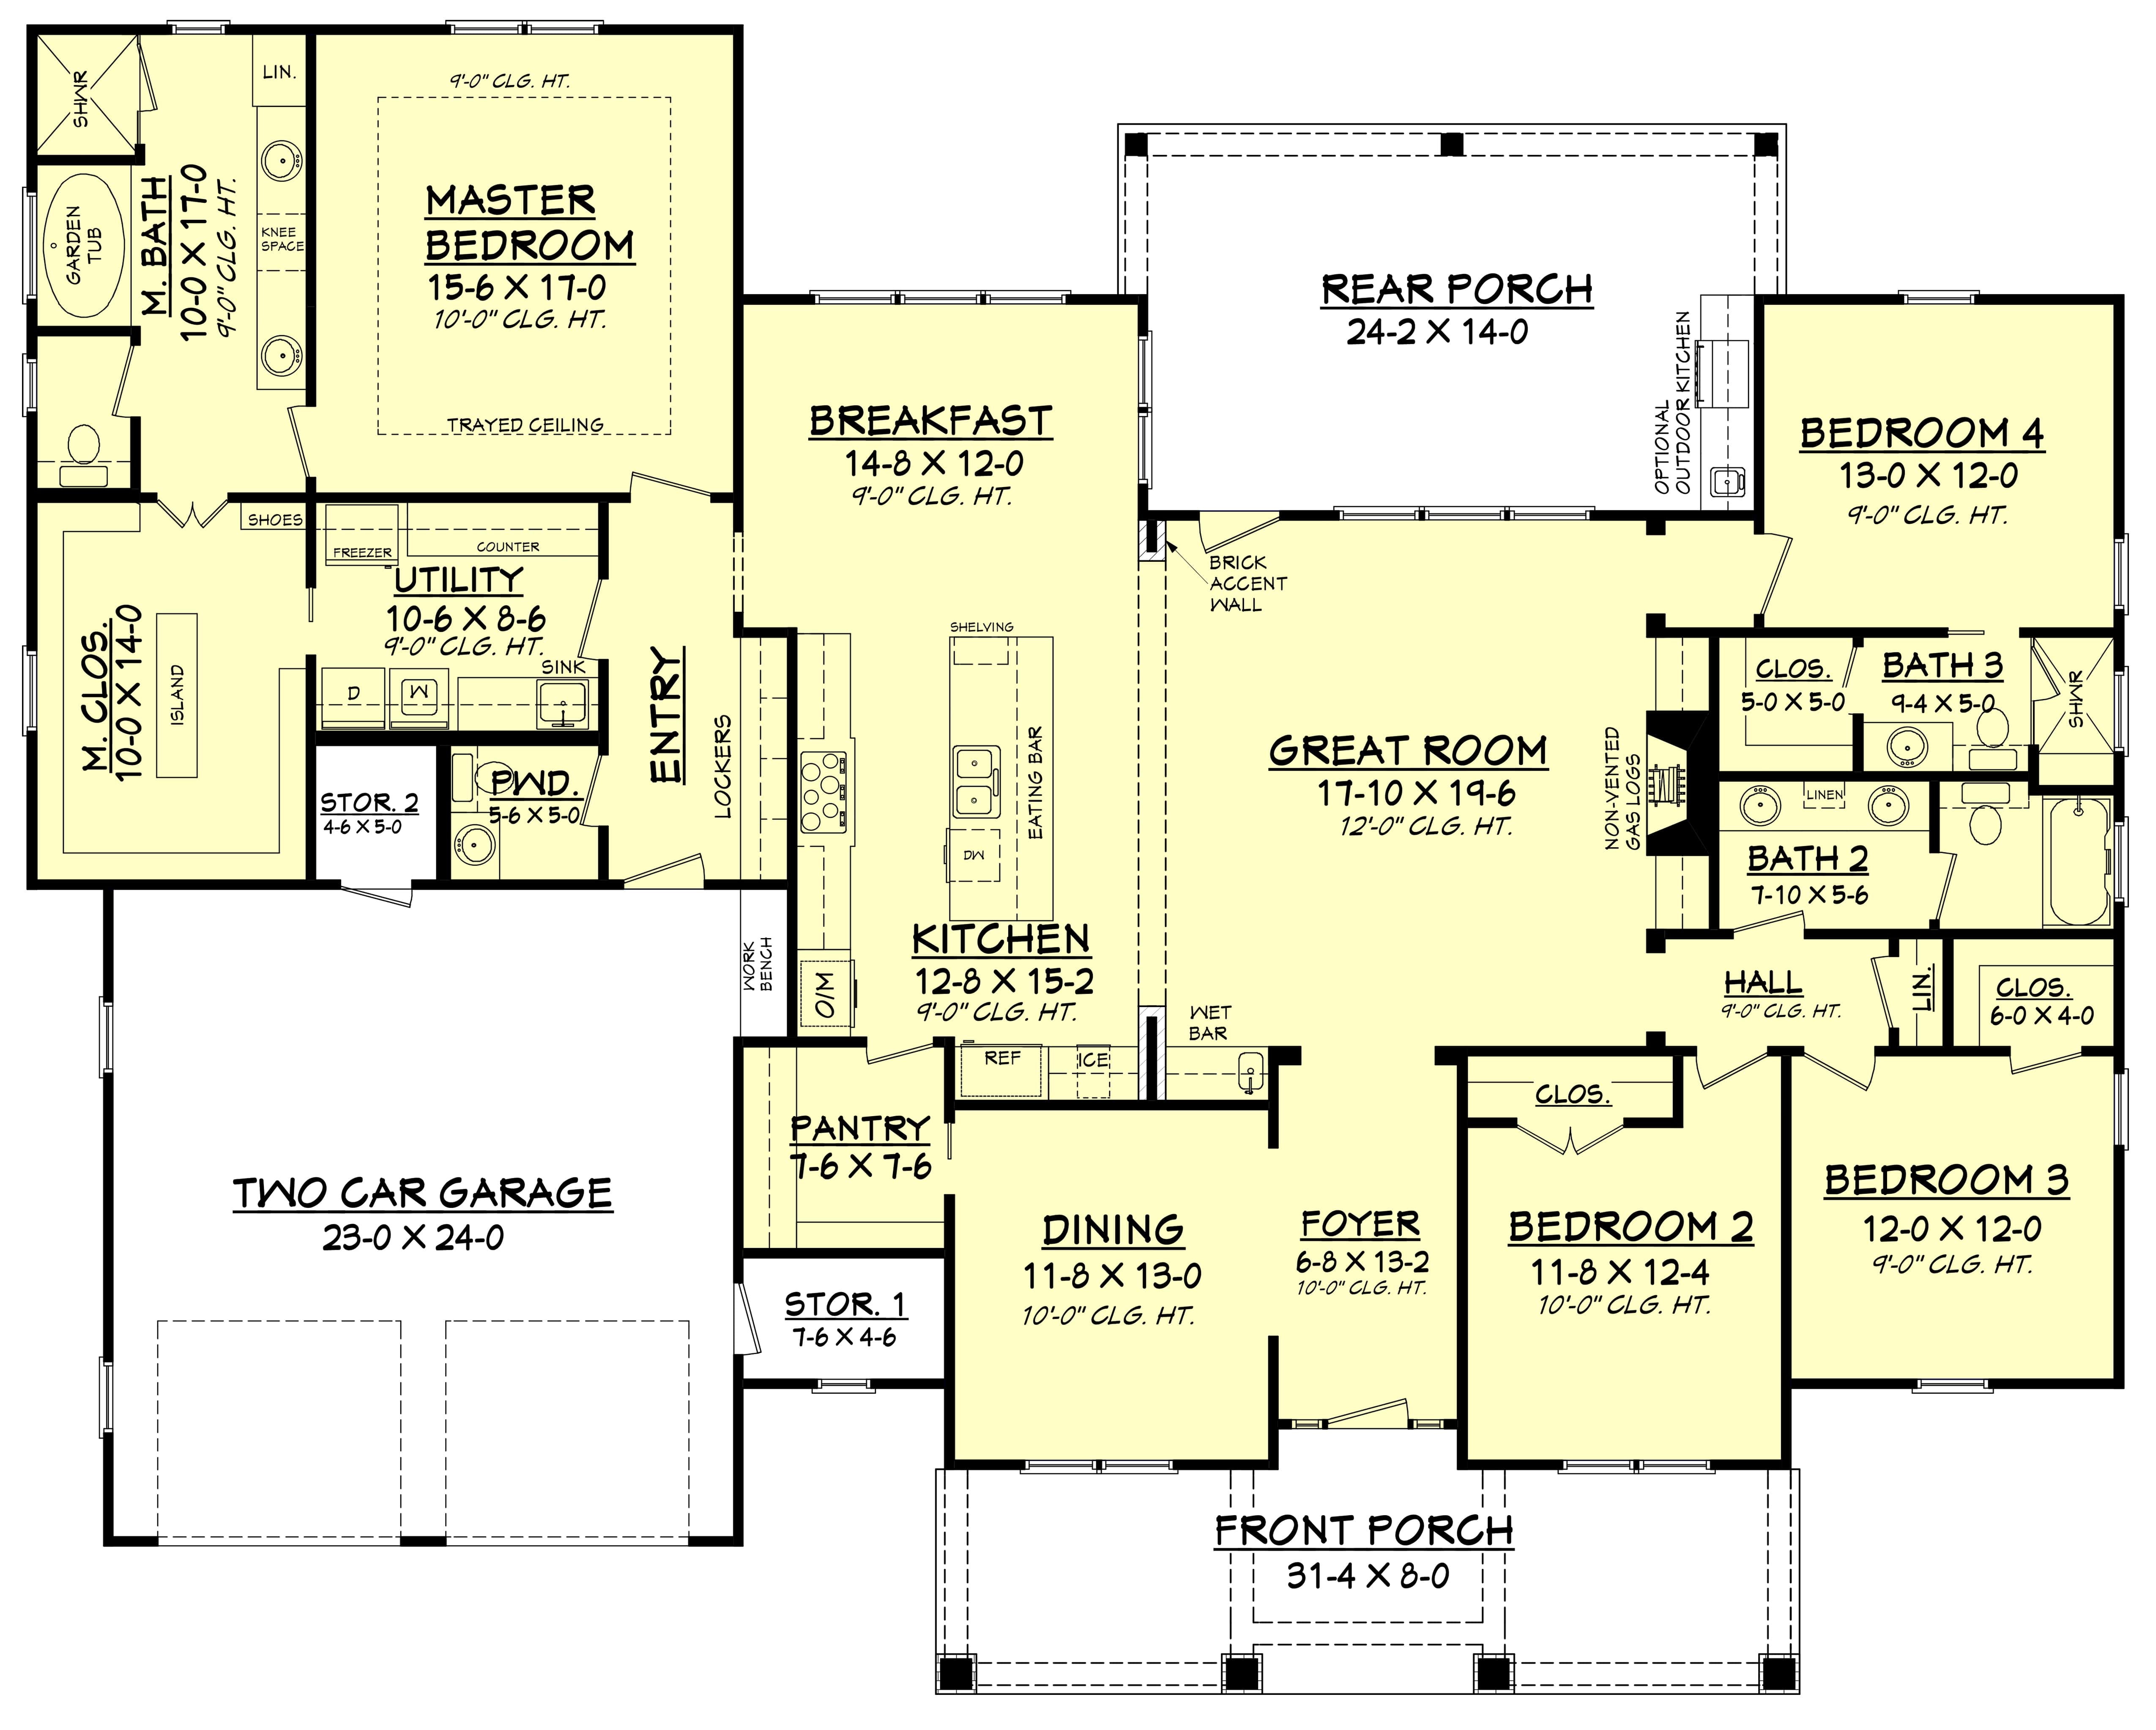 4 bedrm 2759 sq ft country house plan 142 1181 2 bedroom country house plans